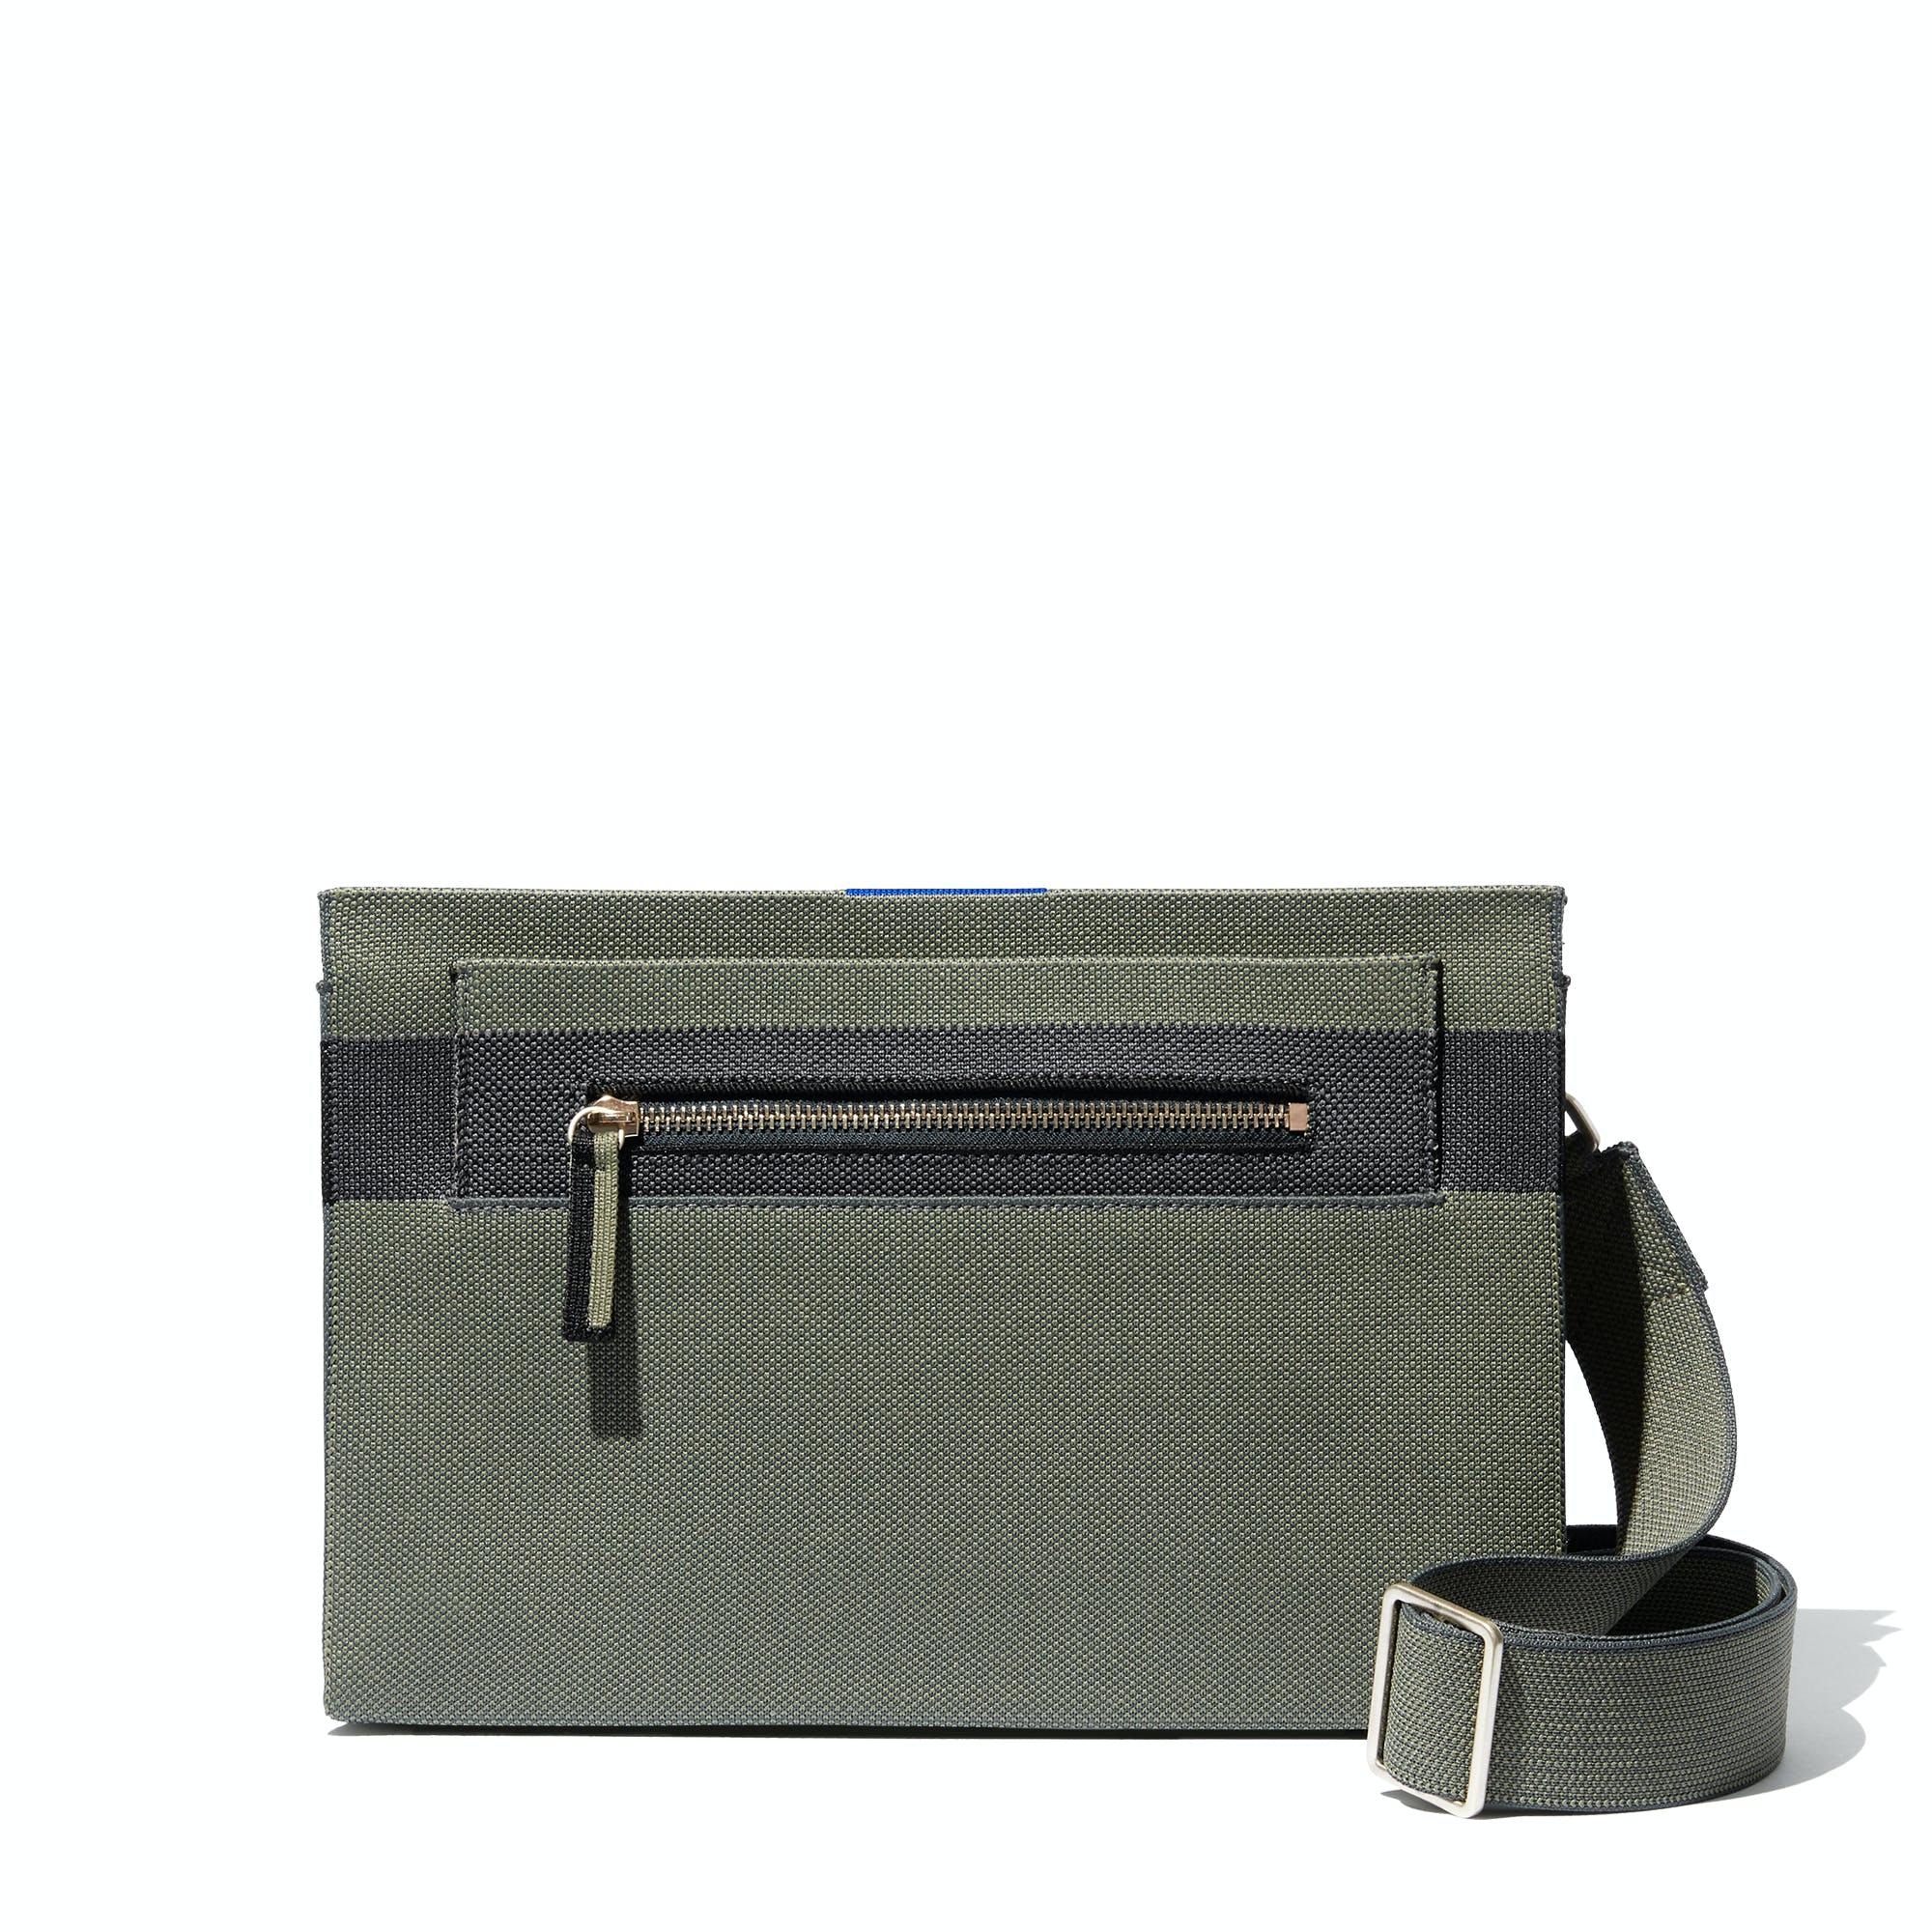 The Dual-Zip Crossbody in Sage Green shown from the front.